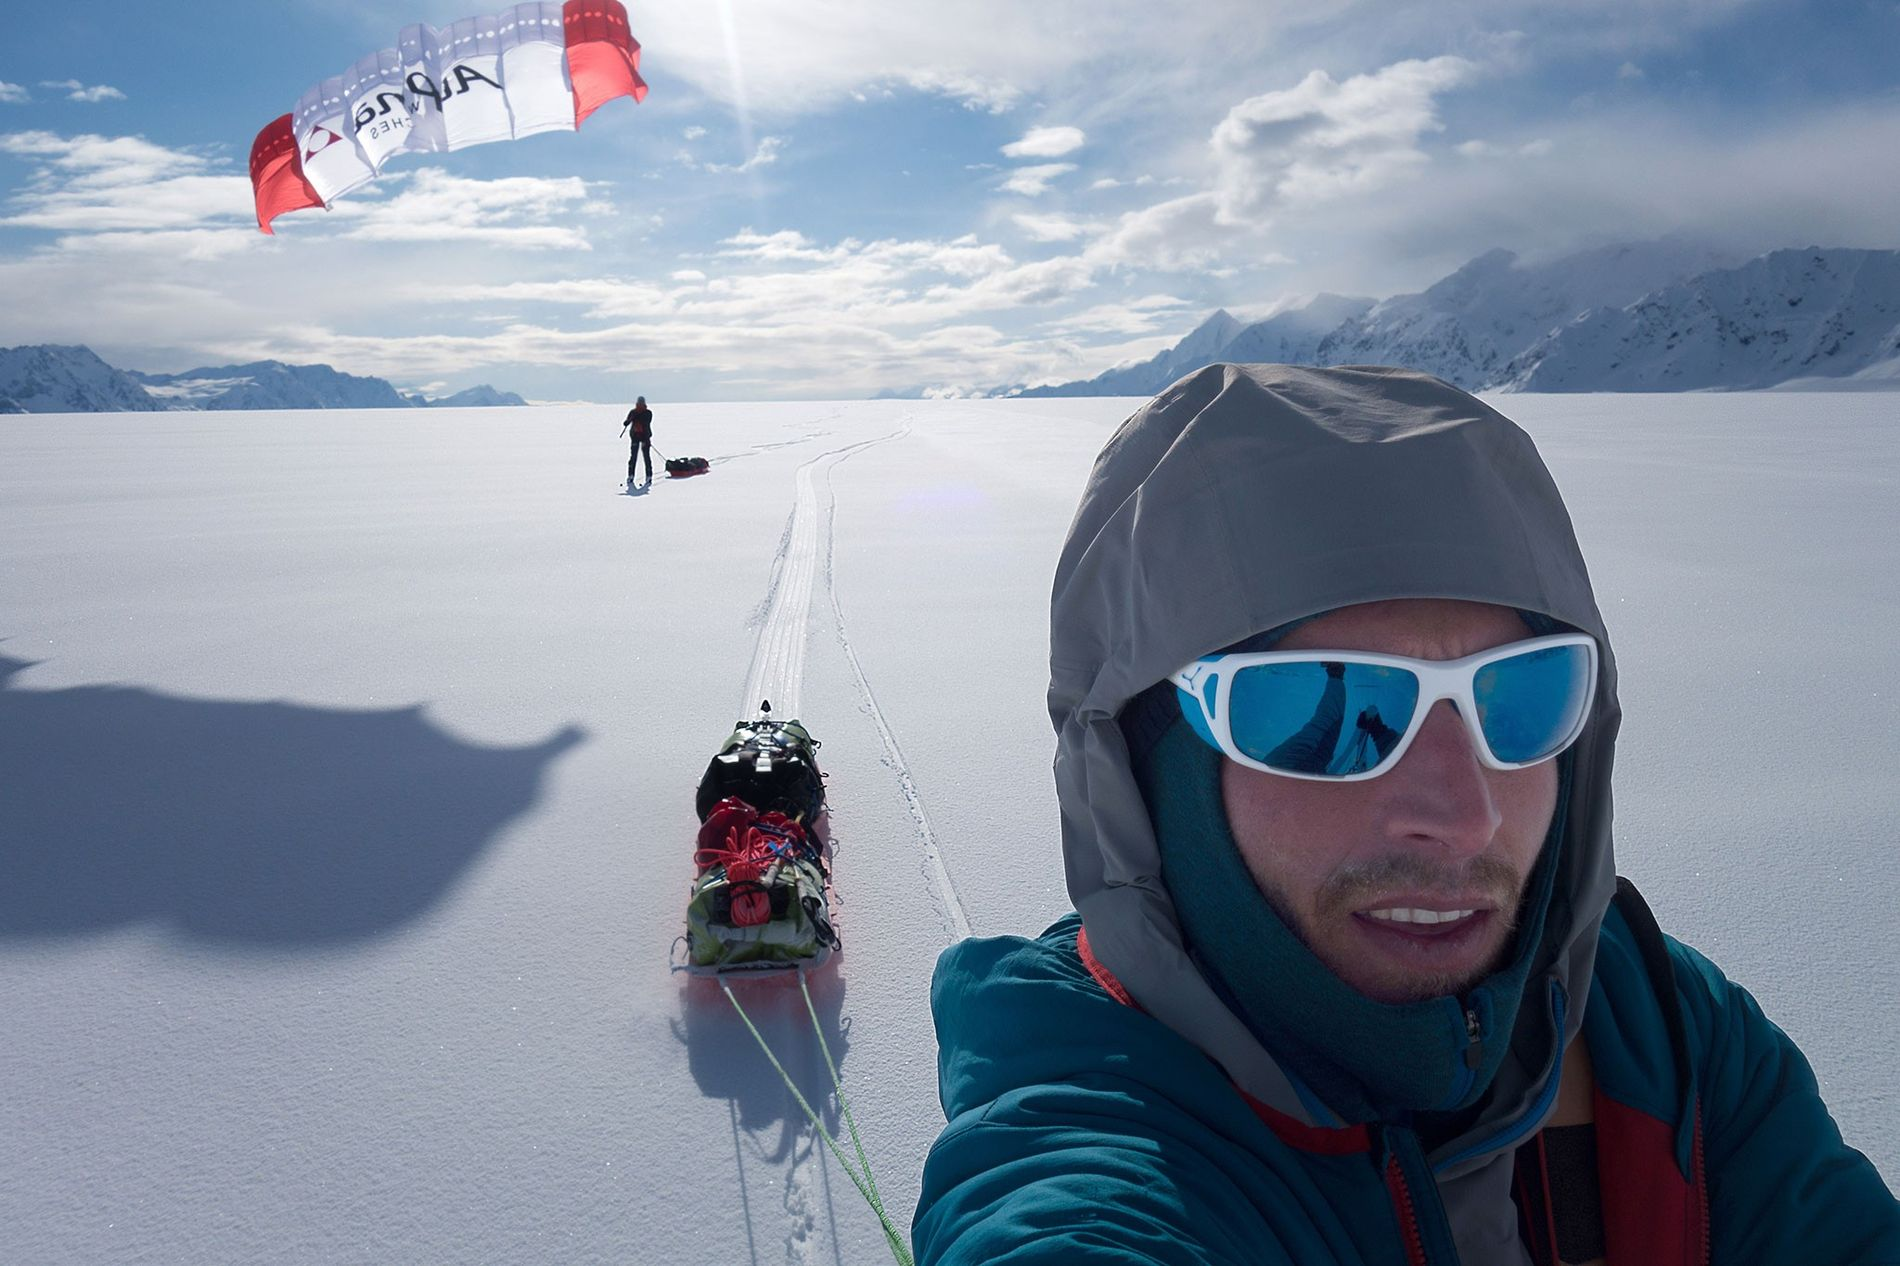 With the wind at their backs, the pair use ski-sails to pull themselves and their sleds ...